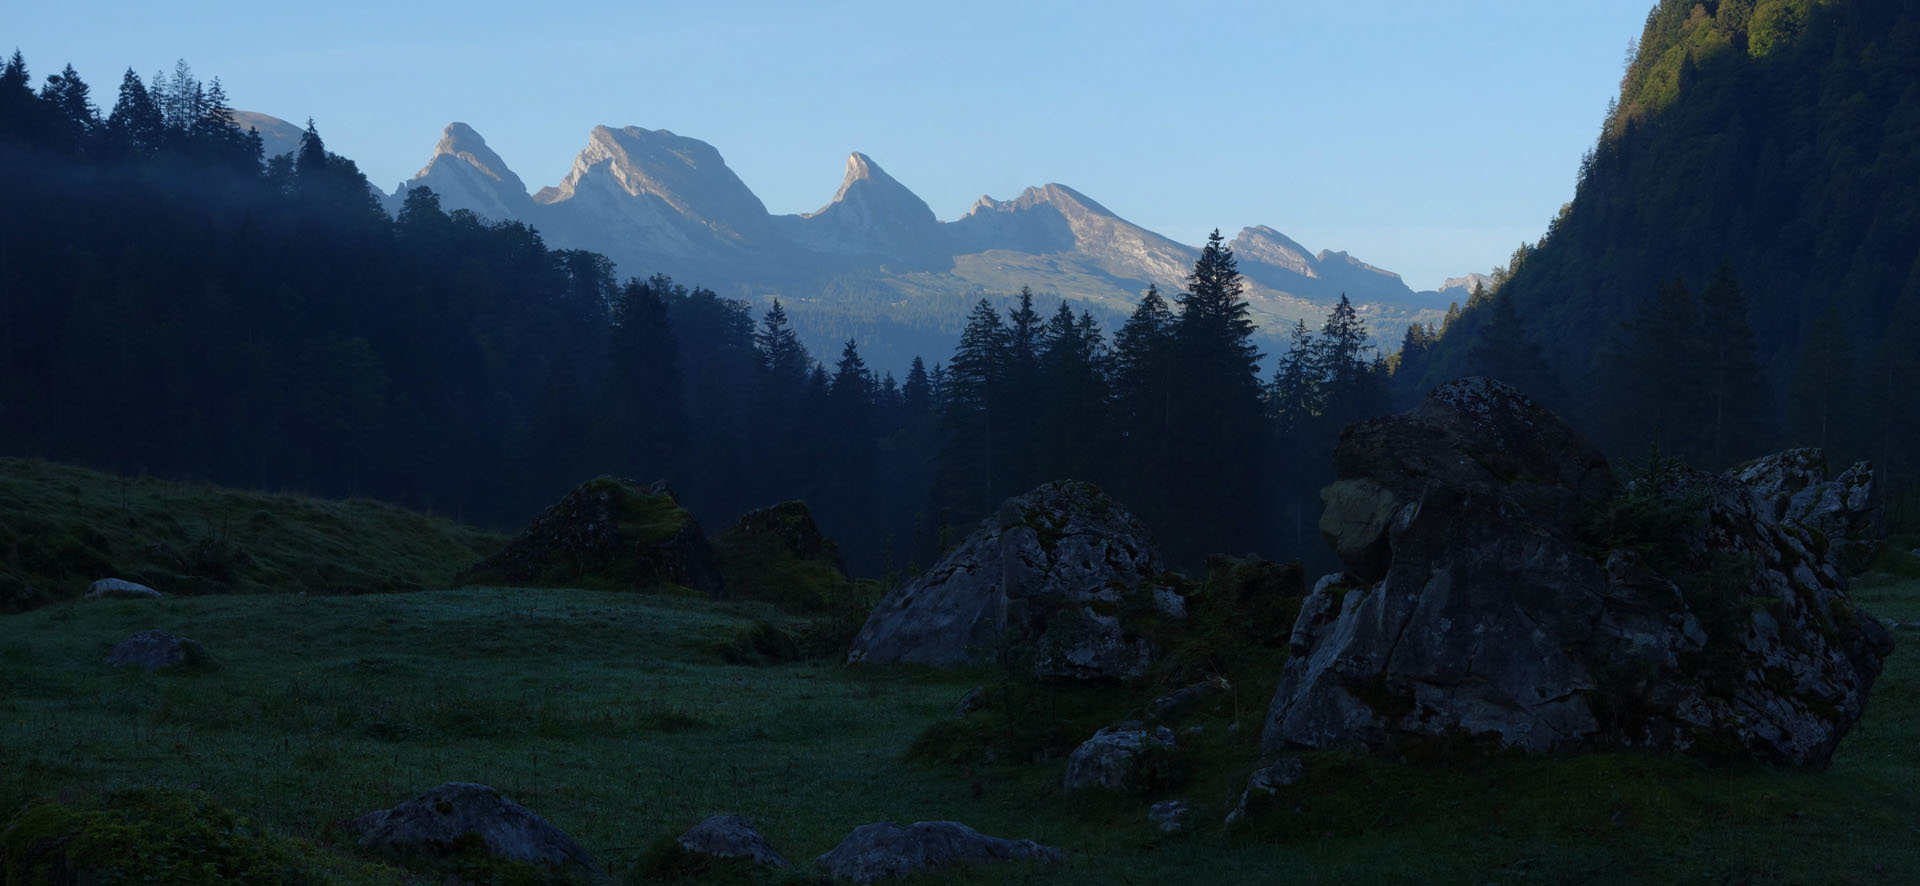 Churfirsten am Morgen